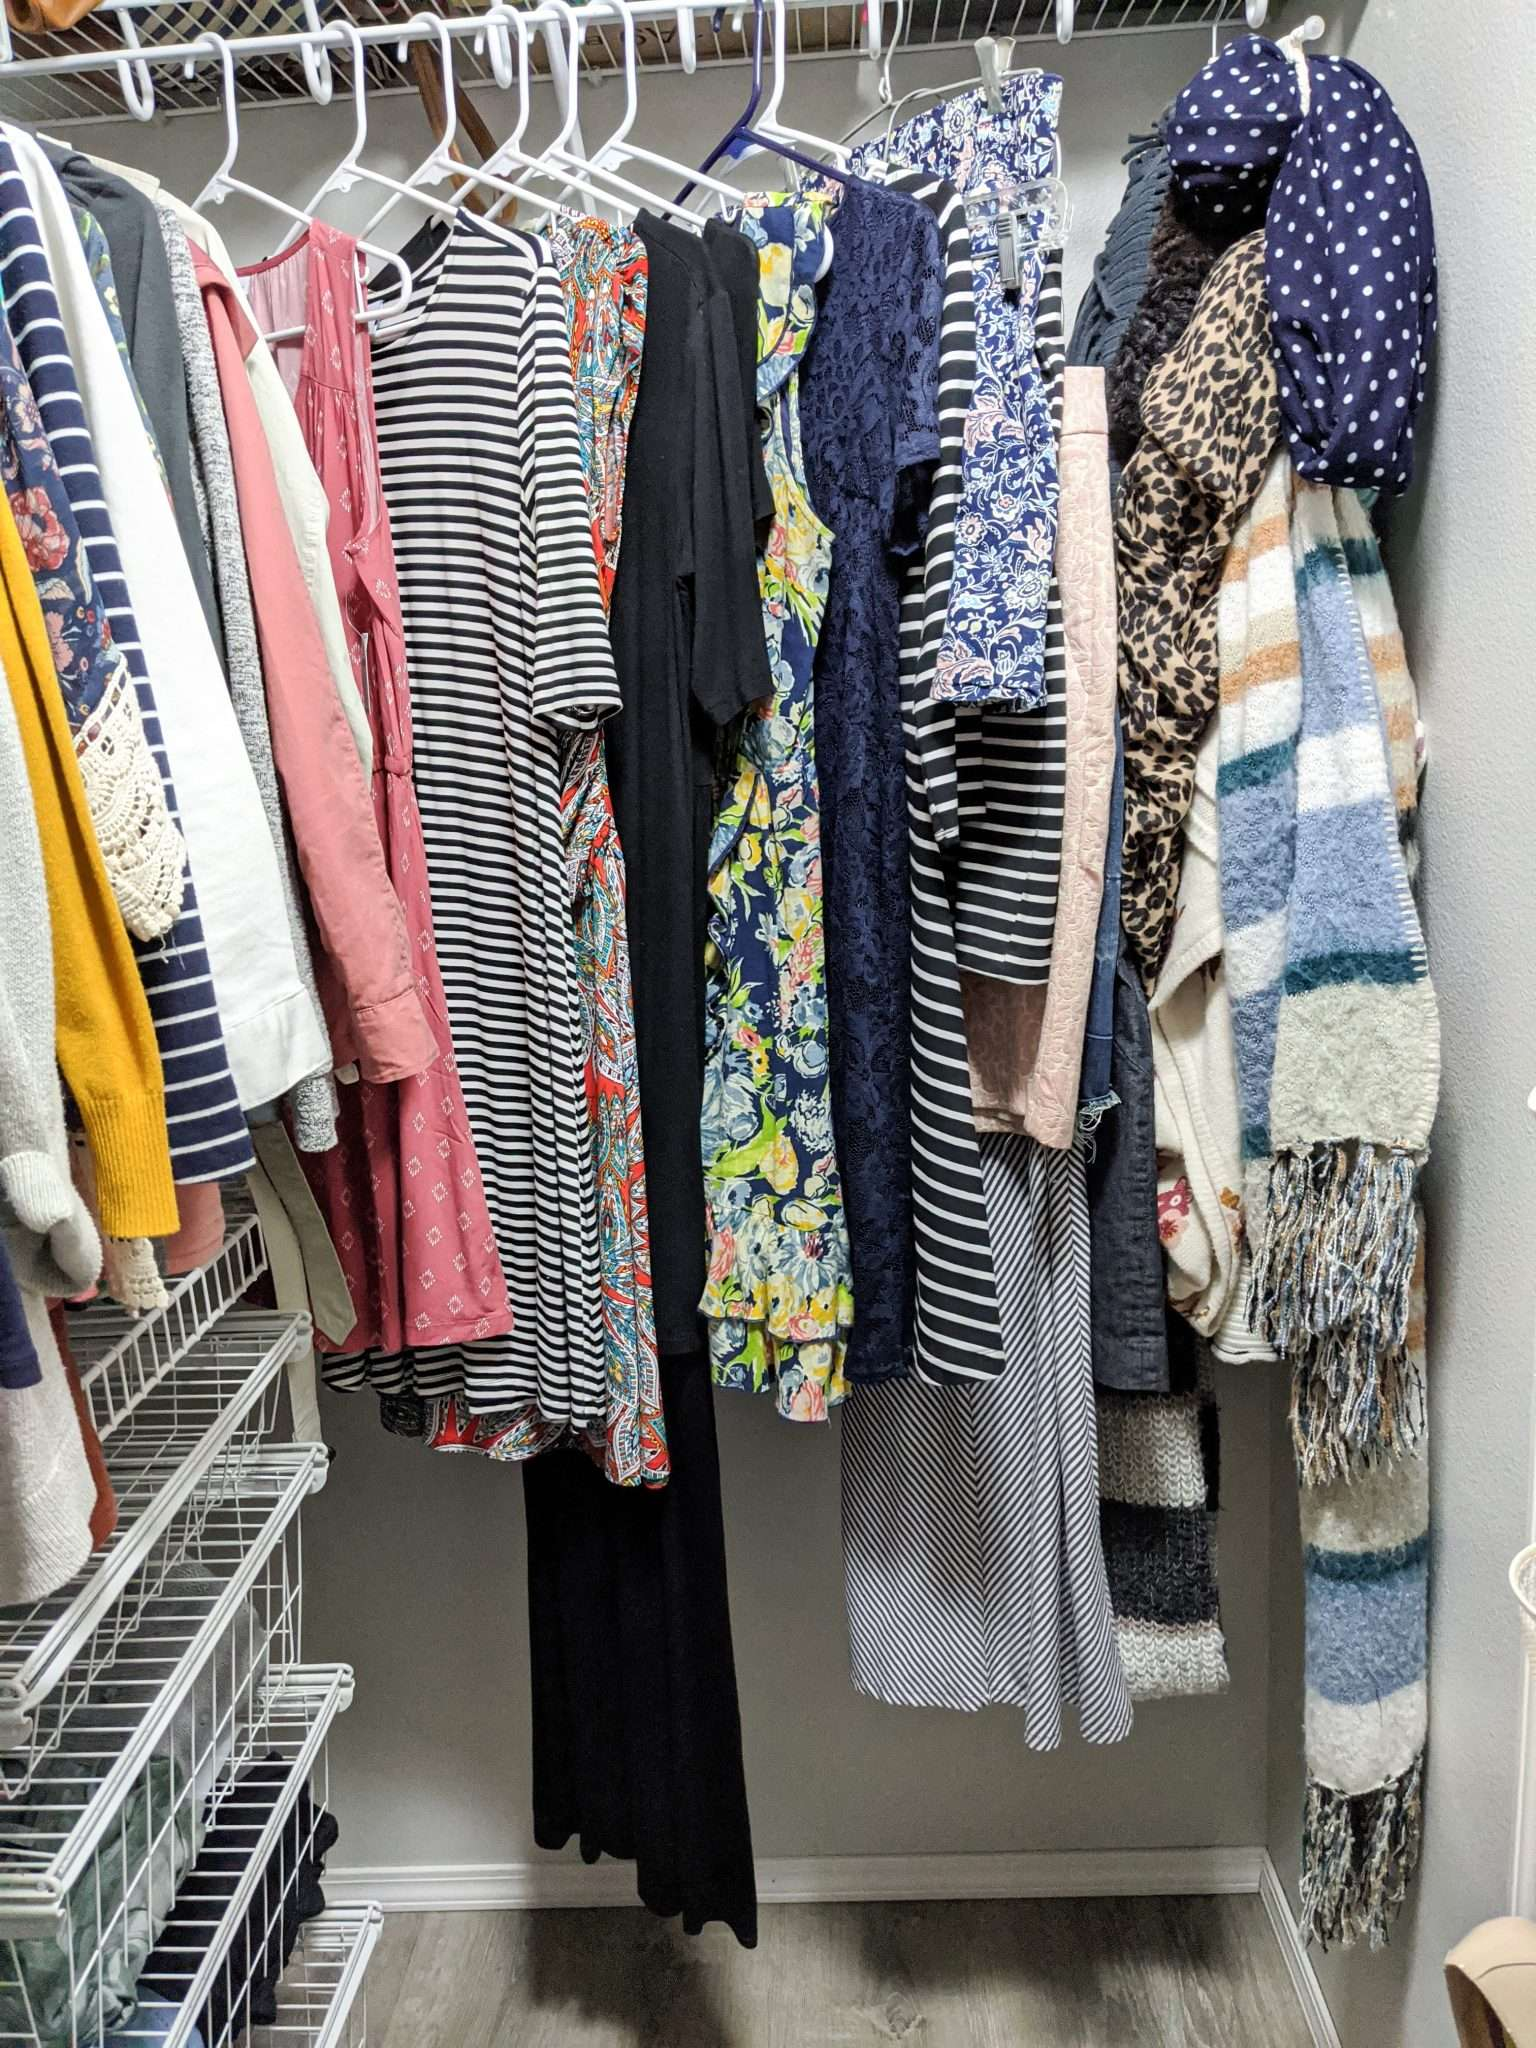 How to organize your closet - the best way to organize your dresses, skirts and scarves.